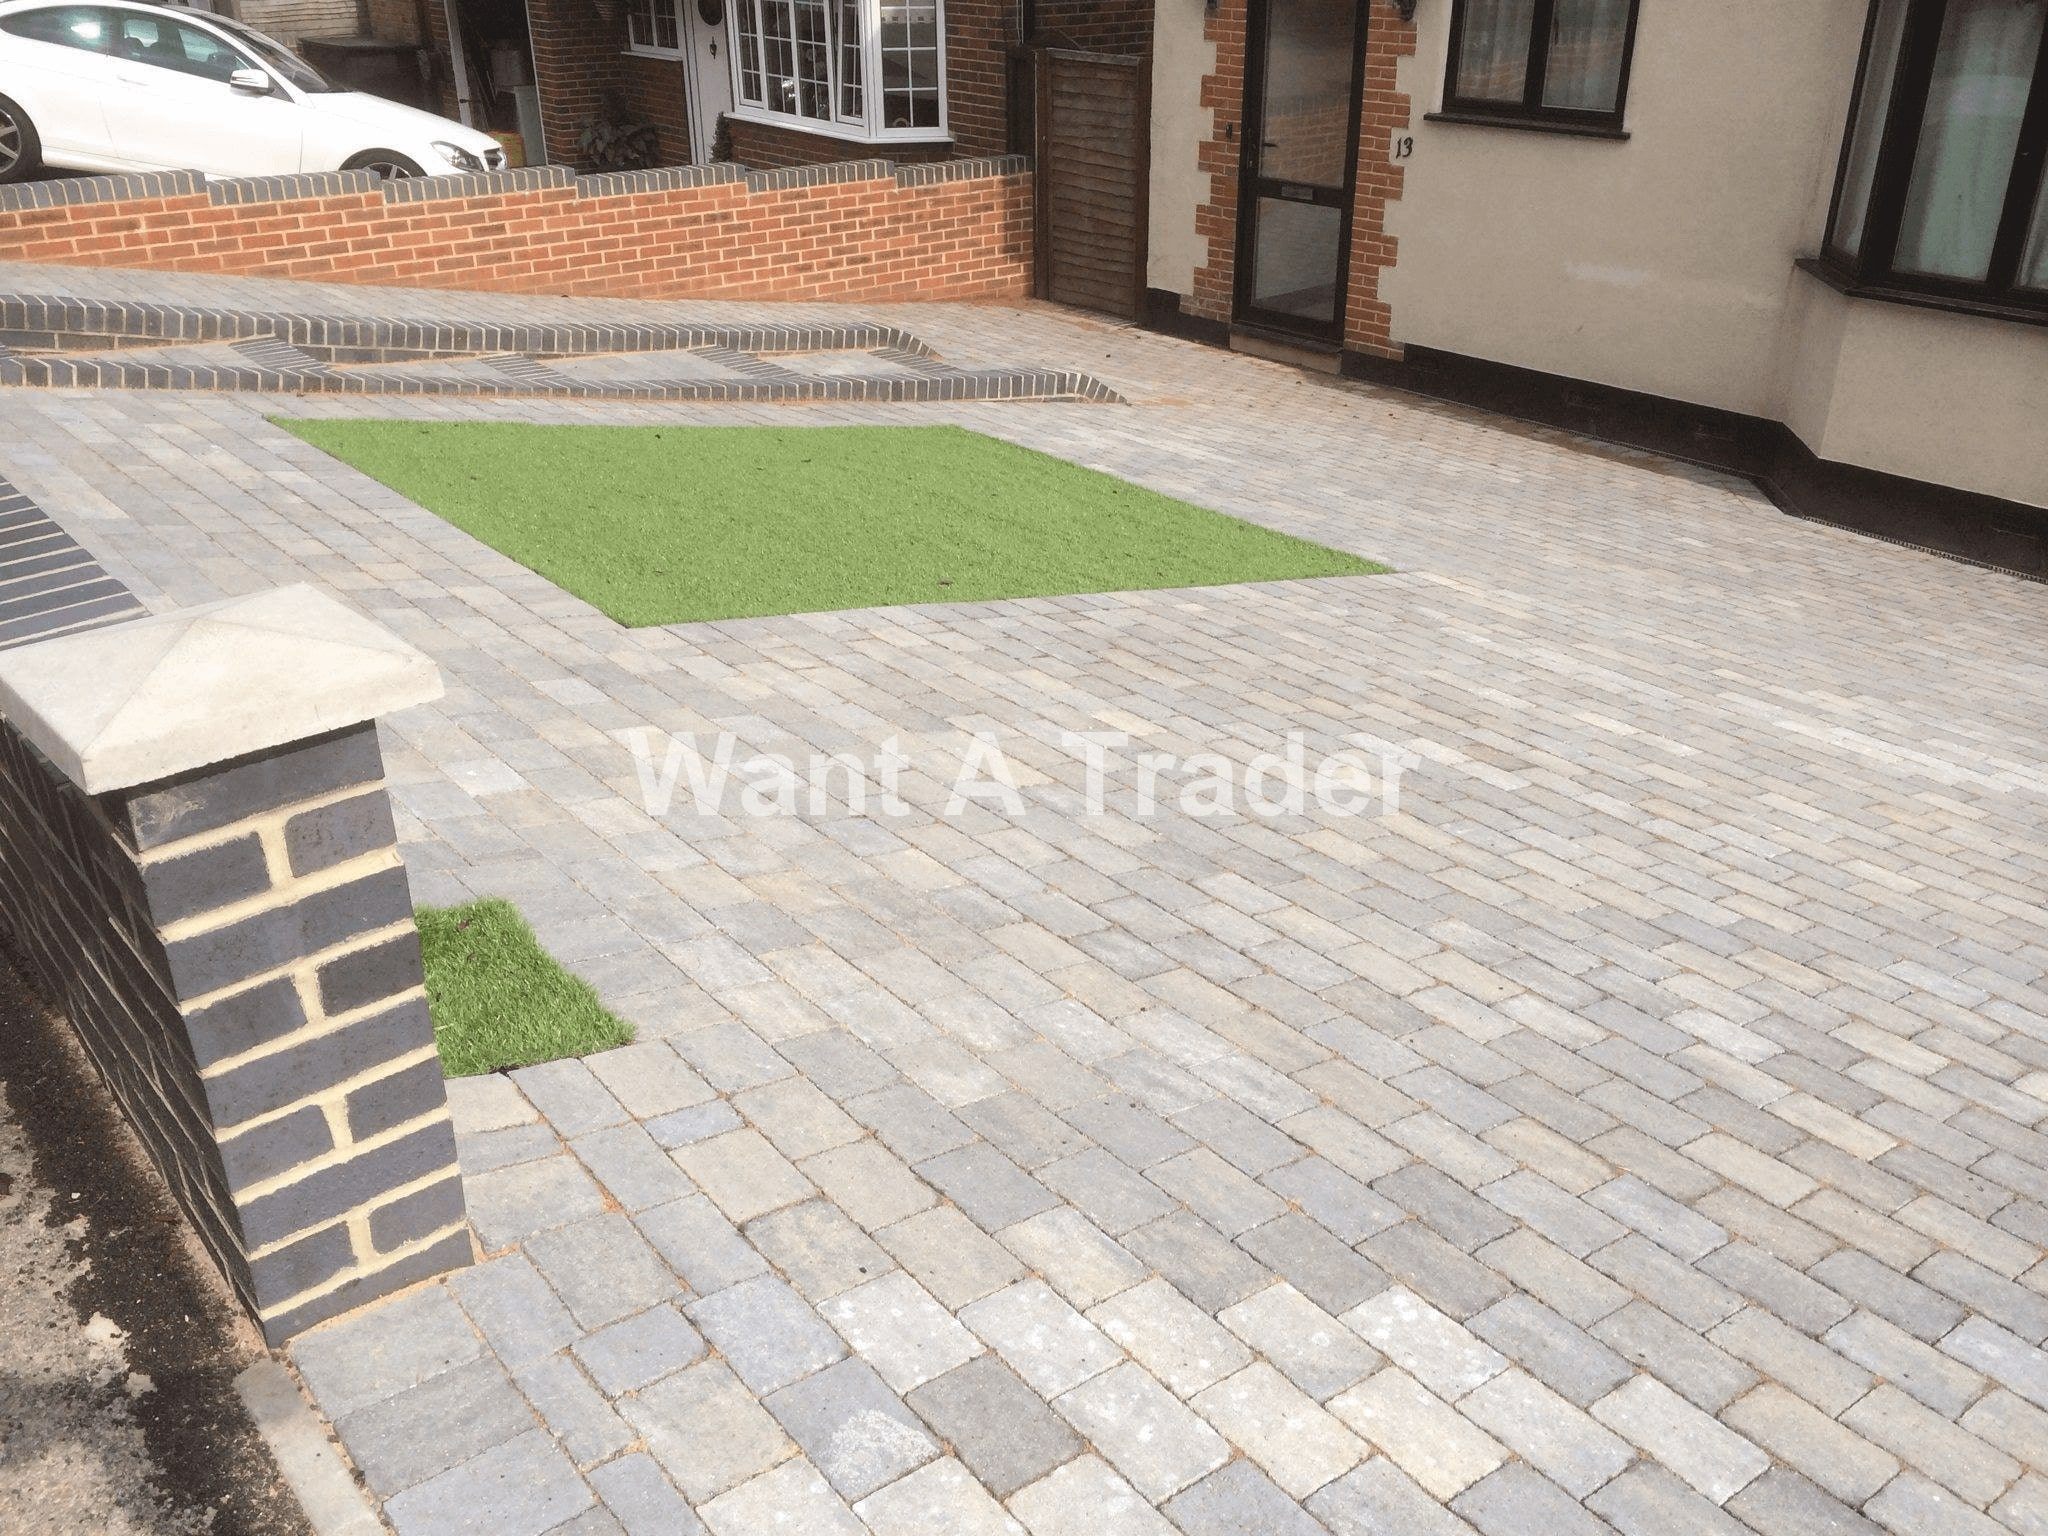 Driveway Design and Installation Company Epsom KT19